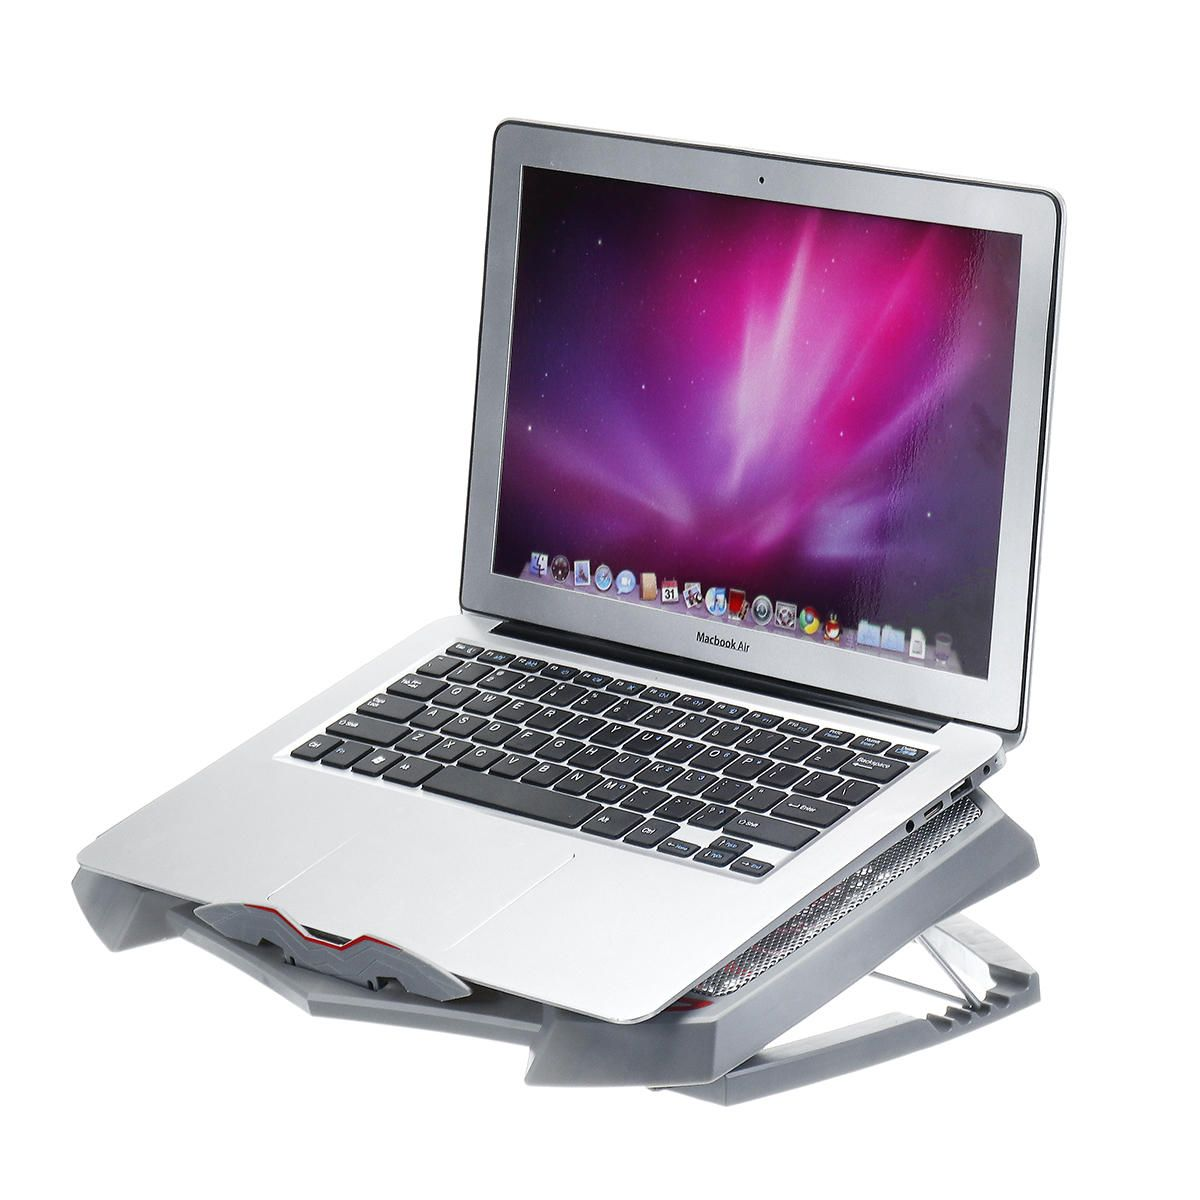 3 Fans Adjustable Cooler Cooling Stand Heat Dissipation For Laptop Macbook Under 17 Inches Laptop Cooling Stand Laptop Cooling Pad Laptop